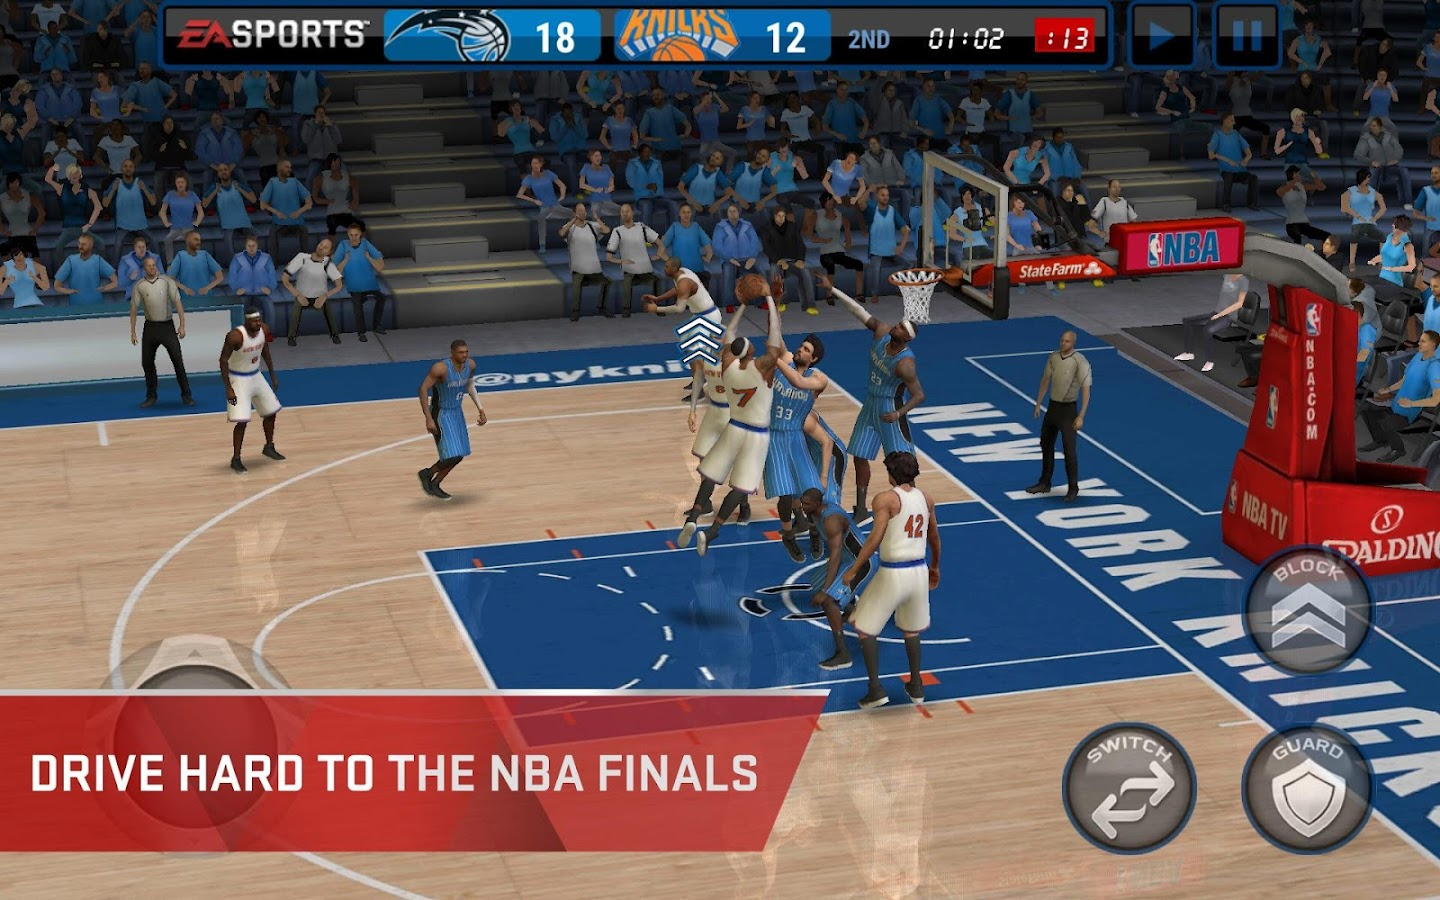 Nba 3d Live Wallpaper Apk Nba Live Mobile Android Apps On Google Play